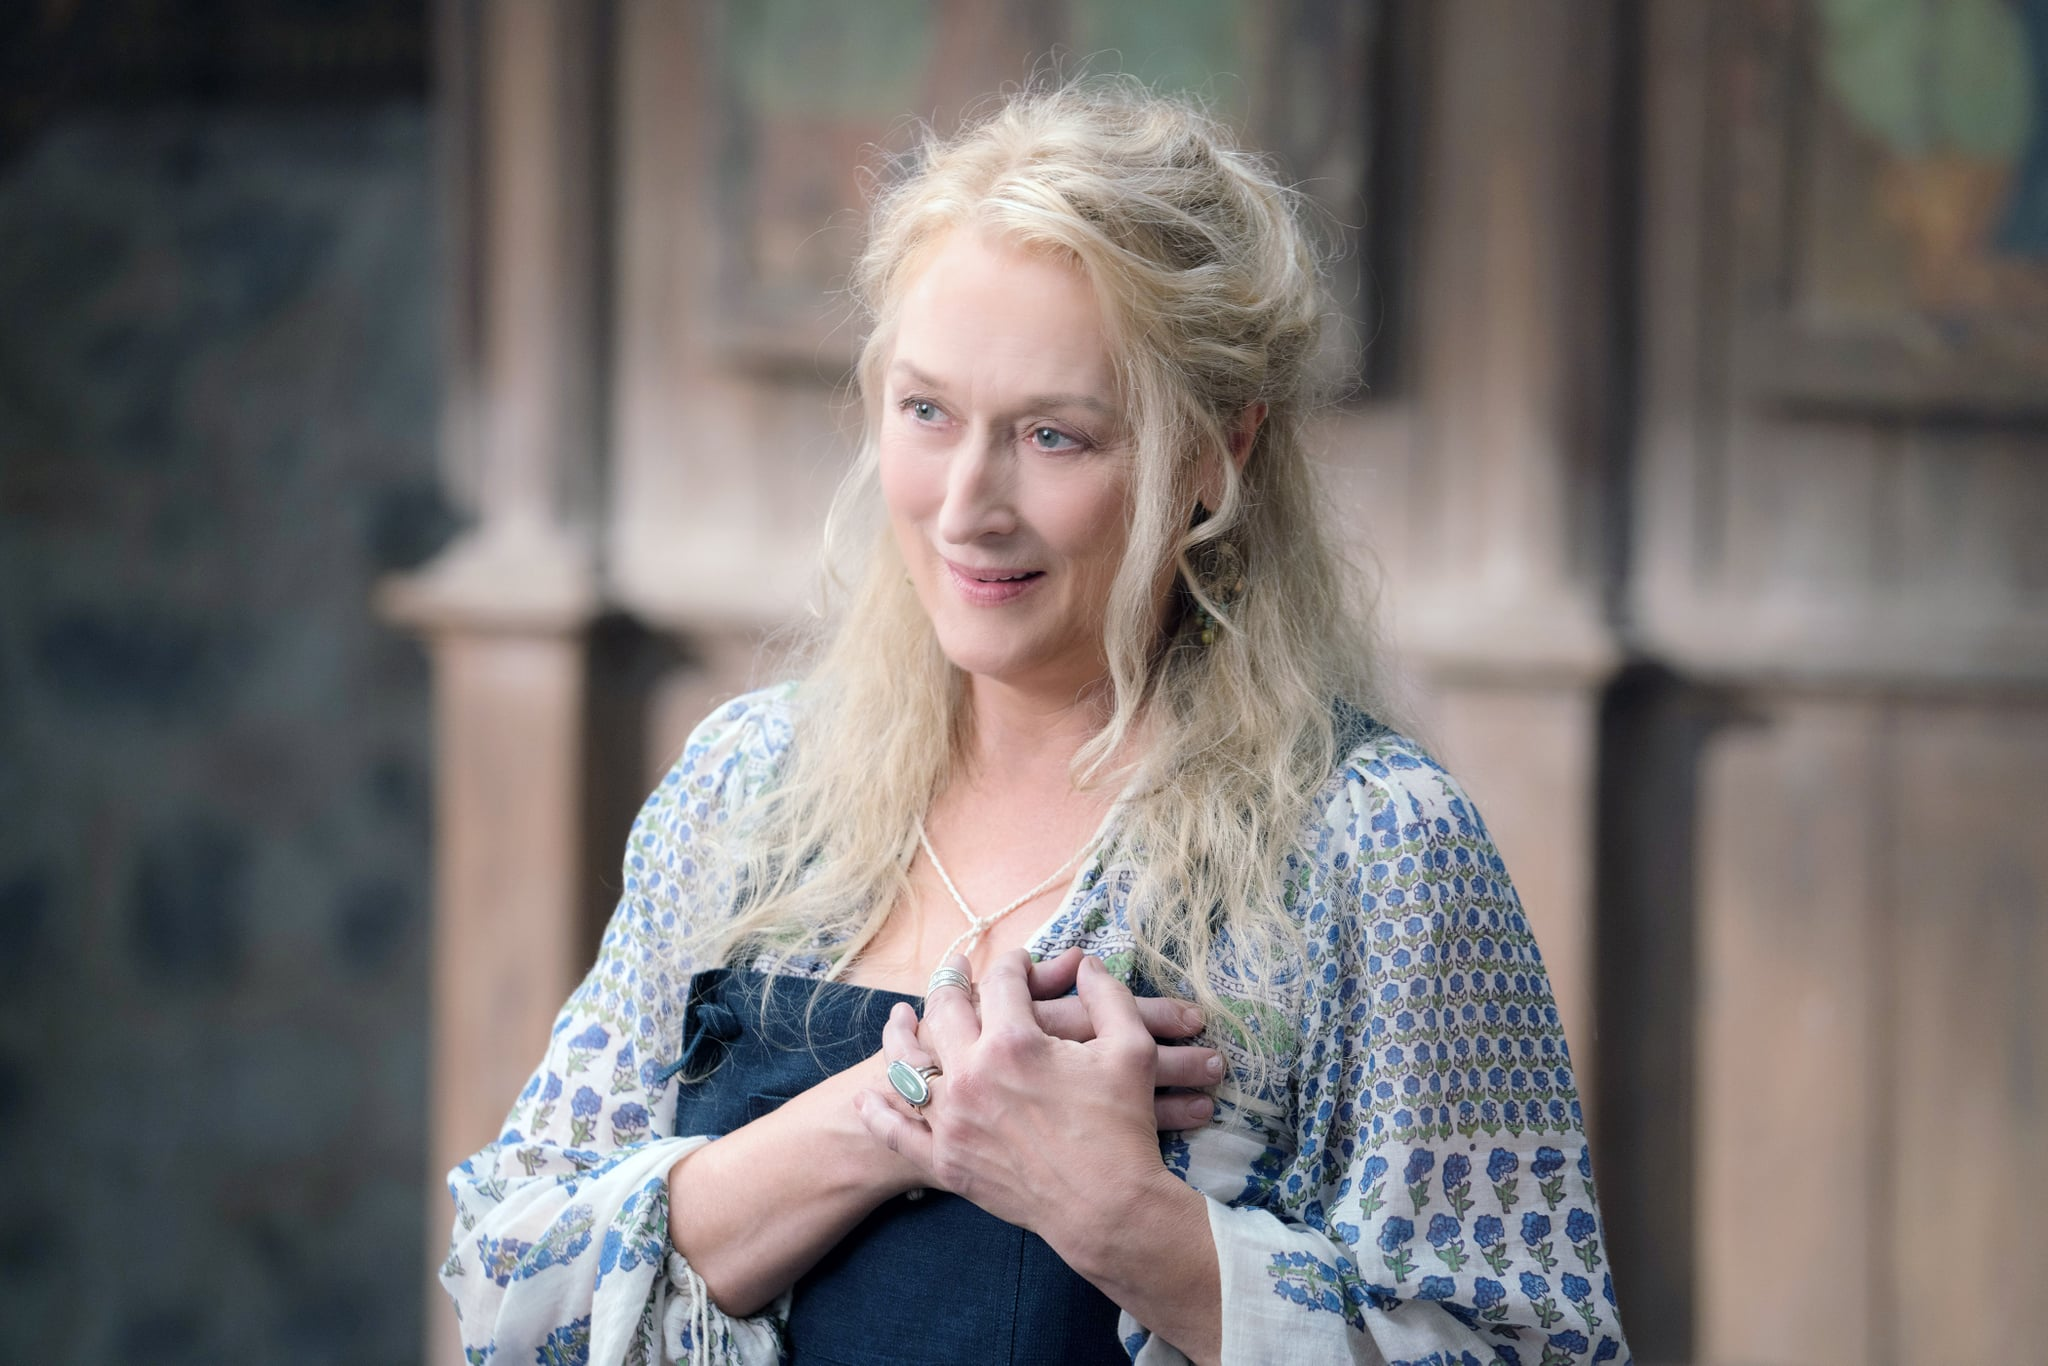 MAMMA MIA! HERE WE GO AGAIN, Meryl Streep, 2018. ph: Jonathan Prime / Universal Studios /Courtesy Everett Collection